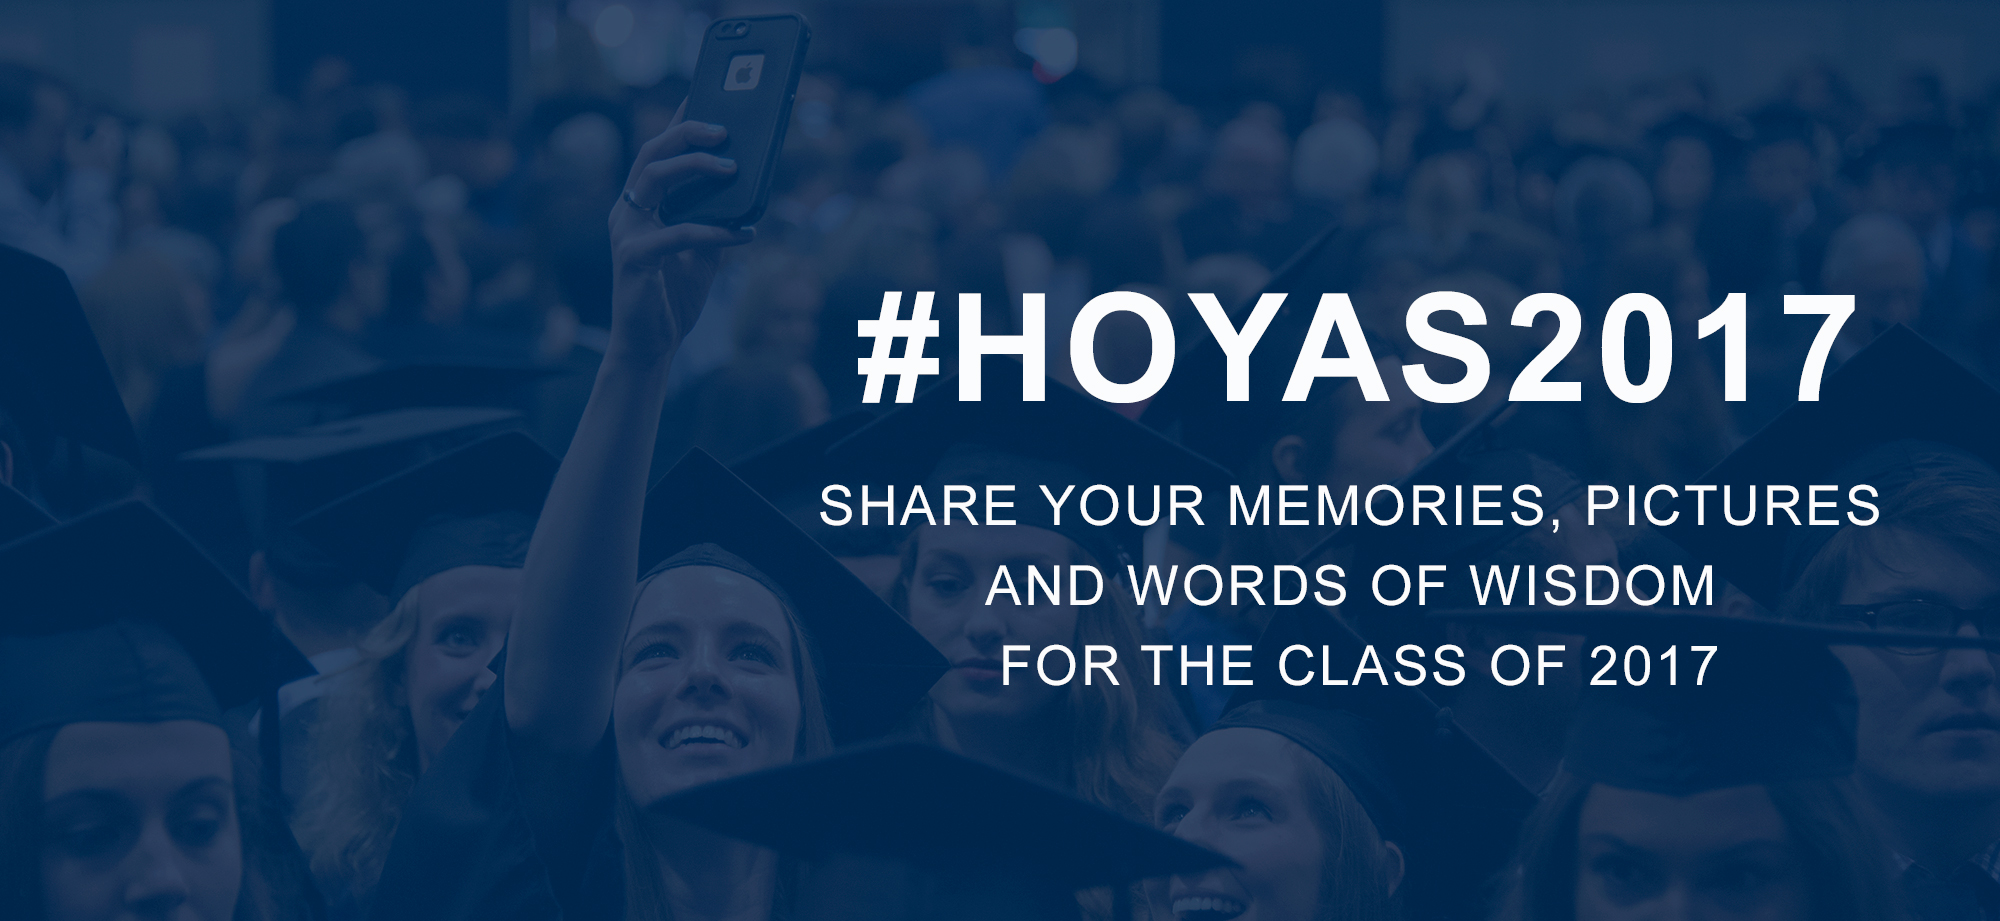 #Hoyas2017 image reminds visitors to share memories on social media